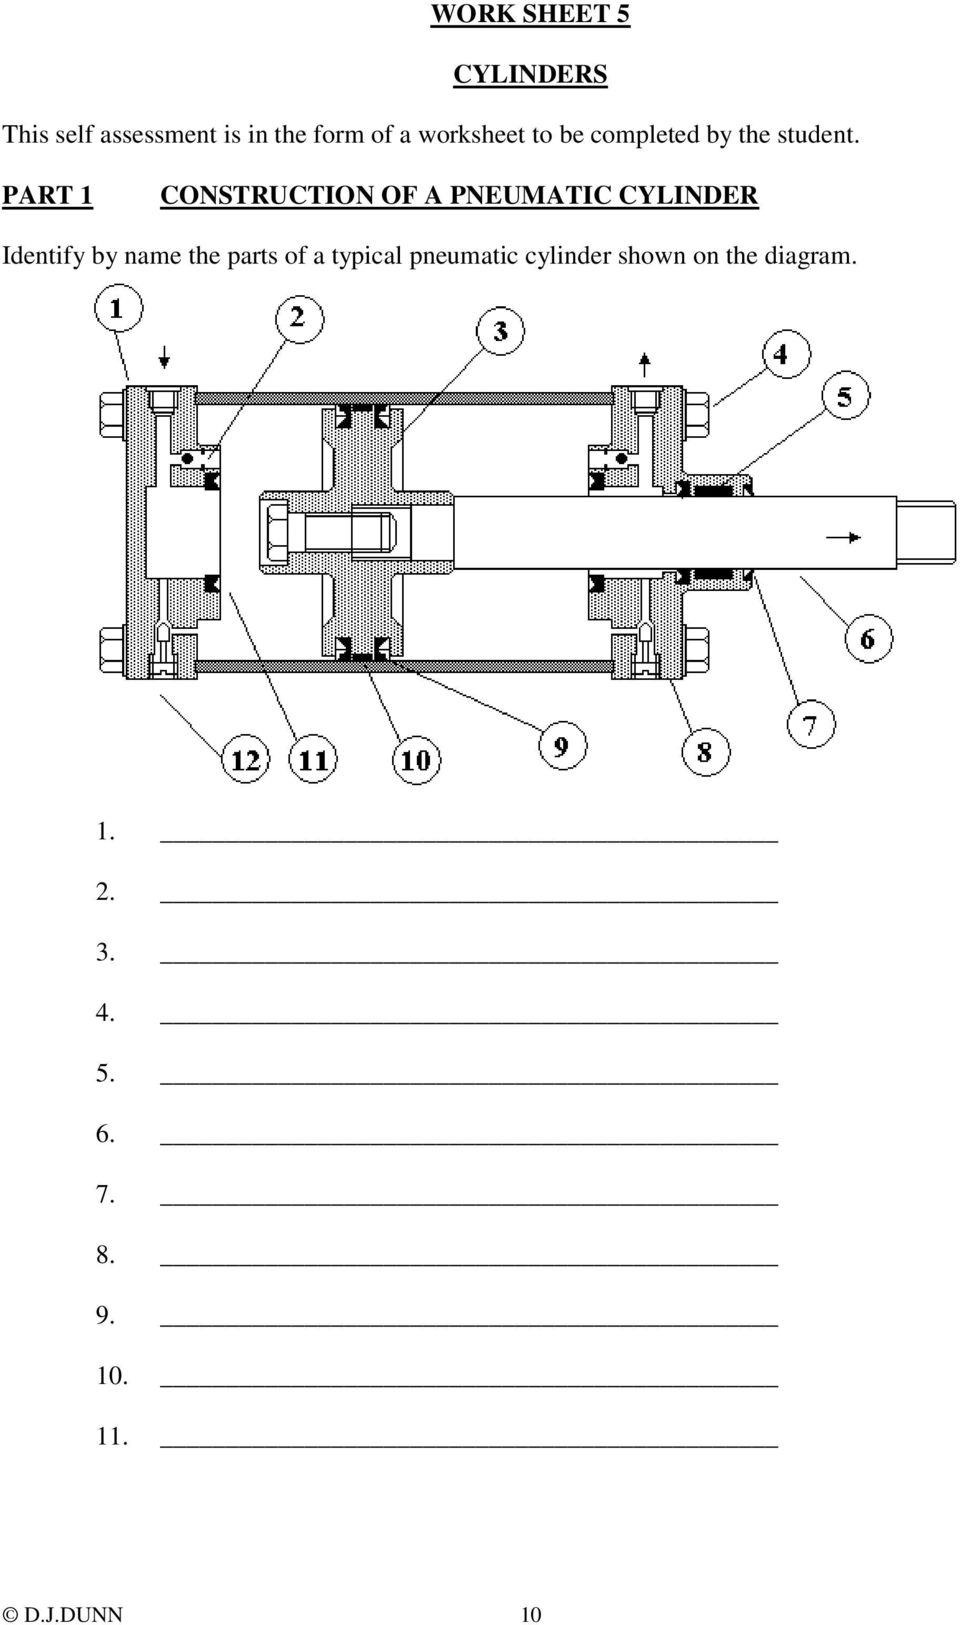 PART 1 CONSTRUCTION OF A PNEUMATIC CYLINDER Identify by name the